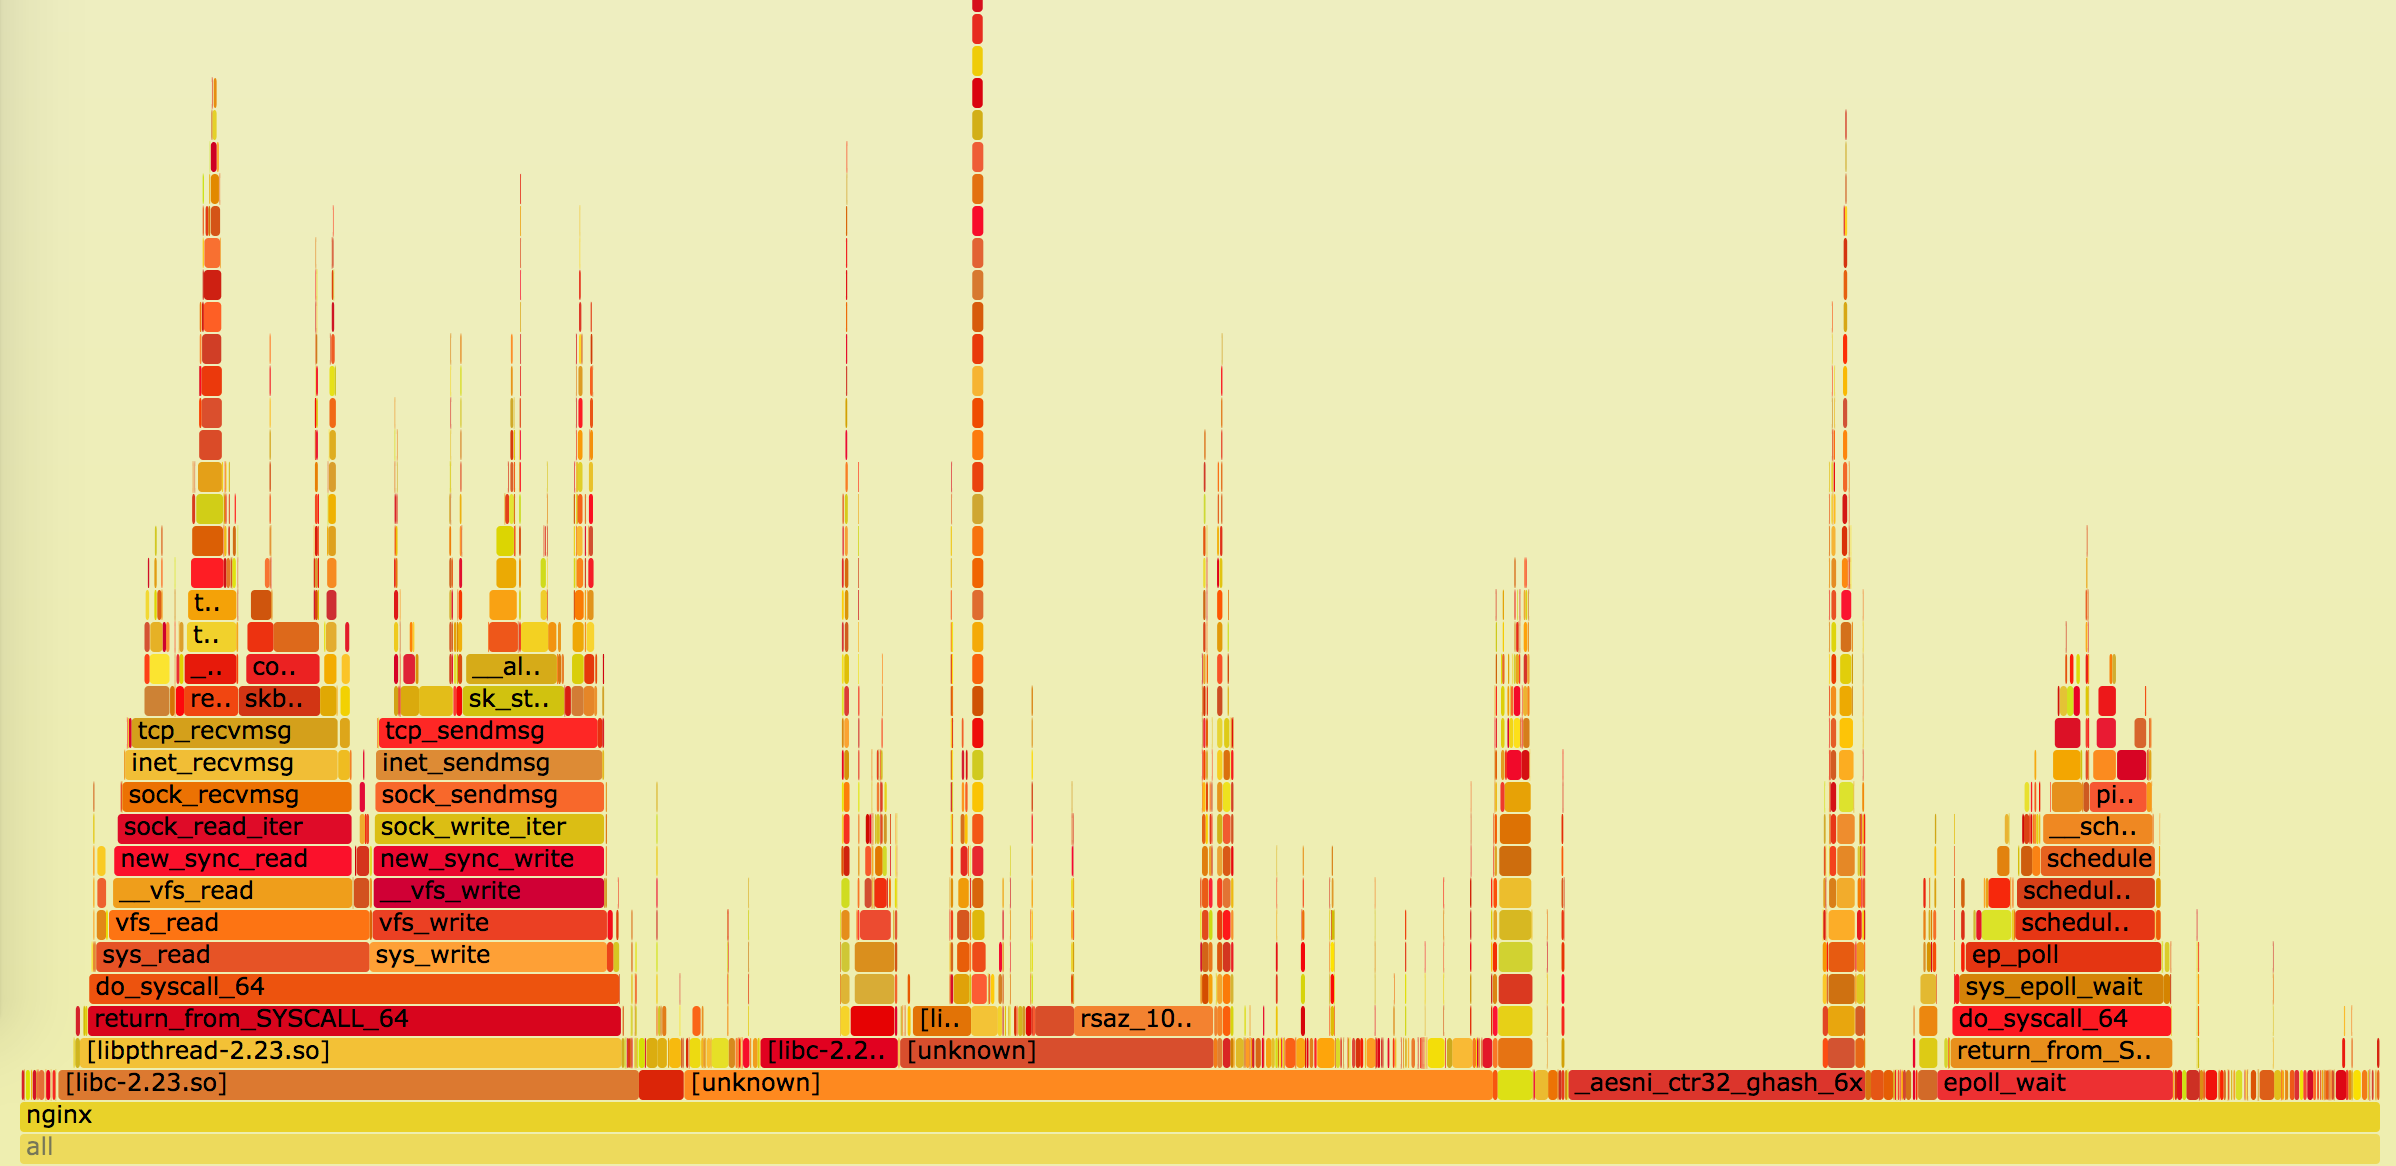 flame-graph.png-222.7kB